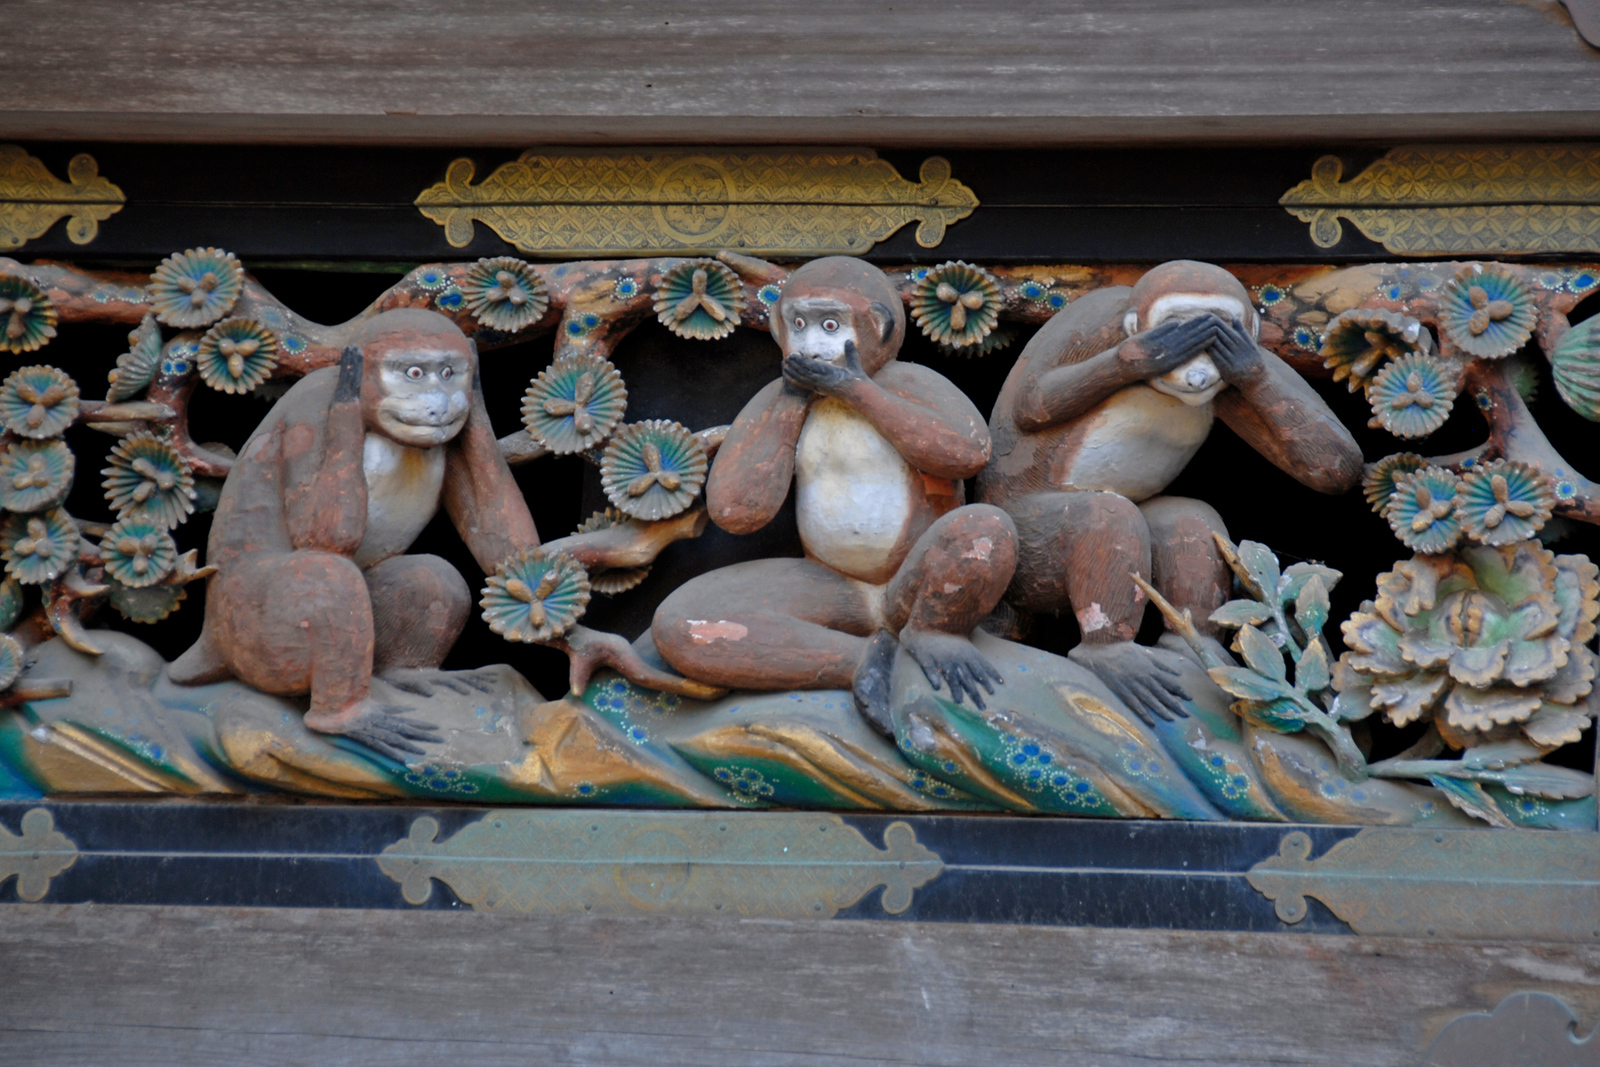 Three wise monkeys statue at a temple in Nikko, Japan